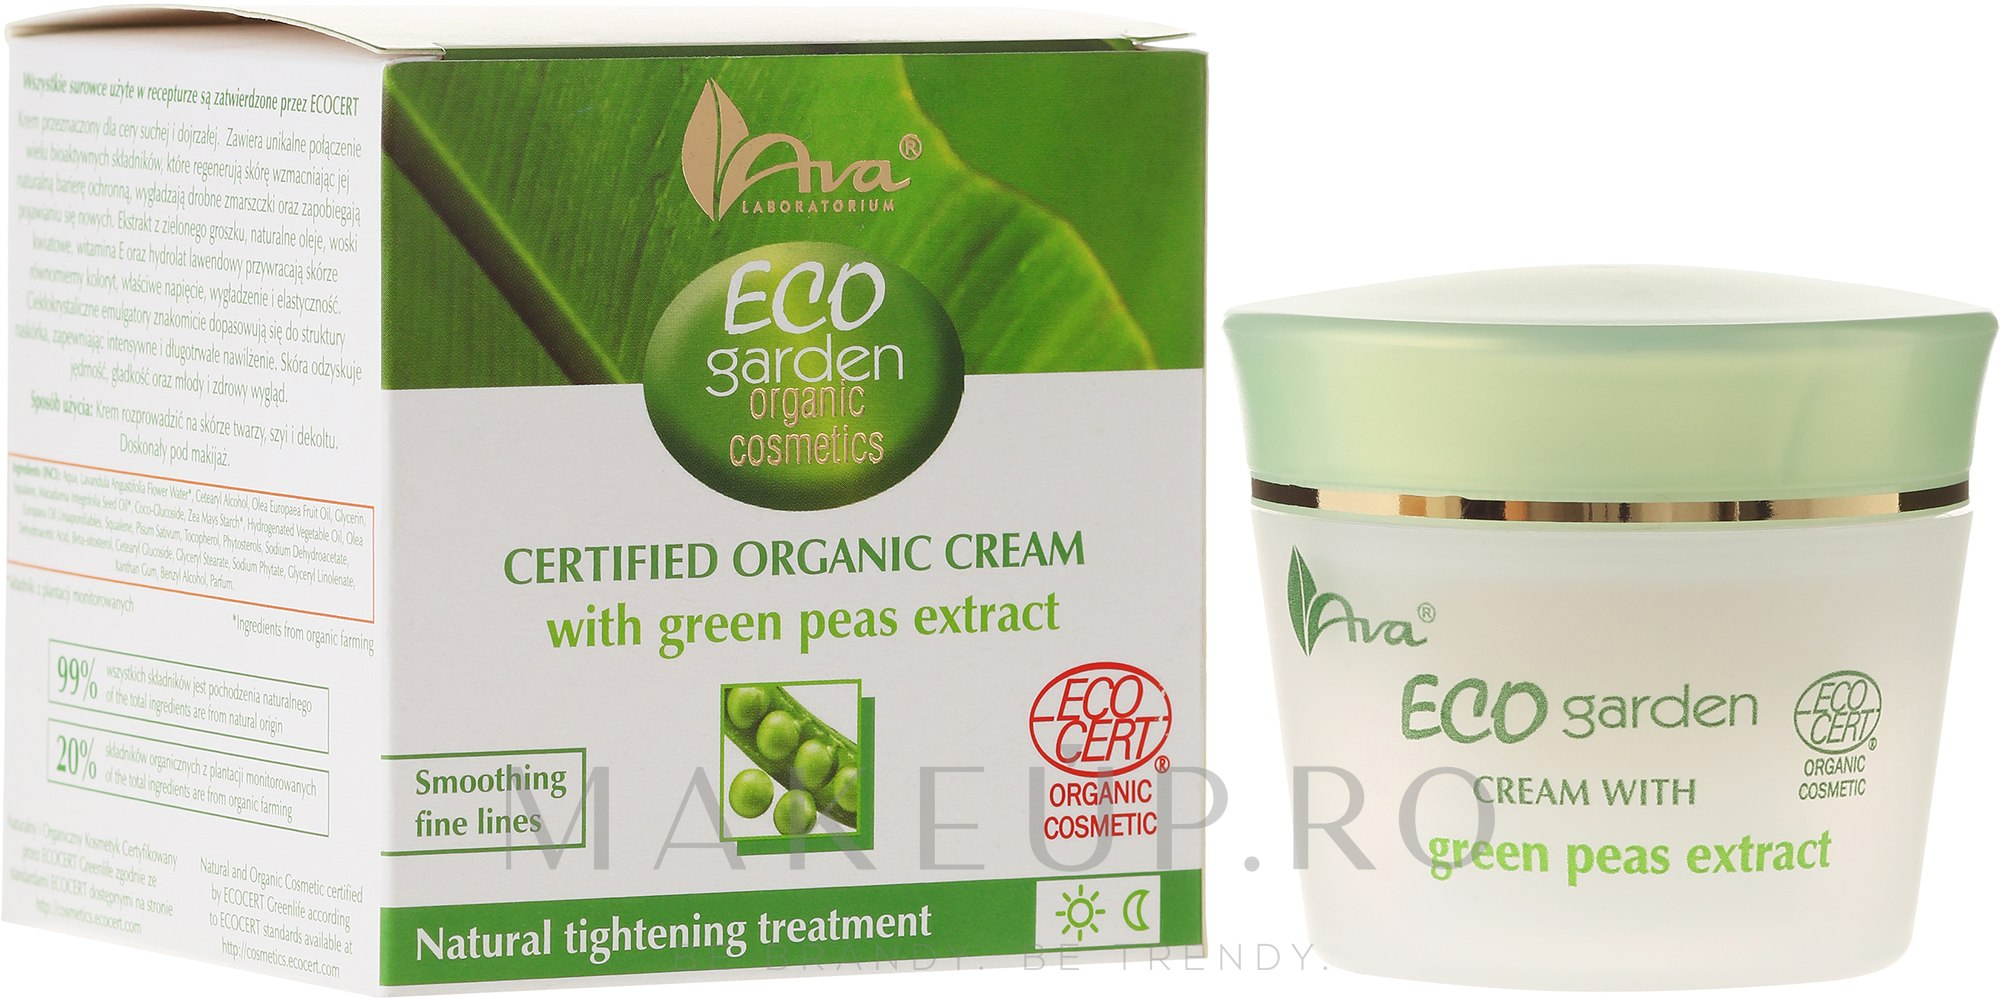 Cremă cu extract de mazăre pentru față 50+ - Ava Laboratorium Eco Garden Certified Organic Cream With Green Peas — Imagine 50 ml